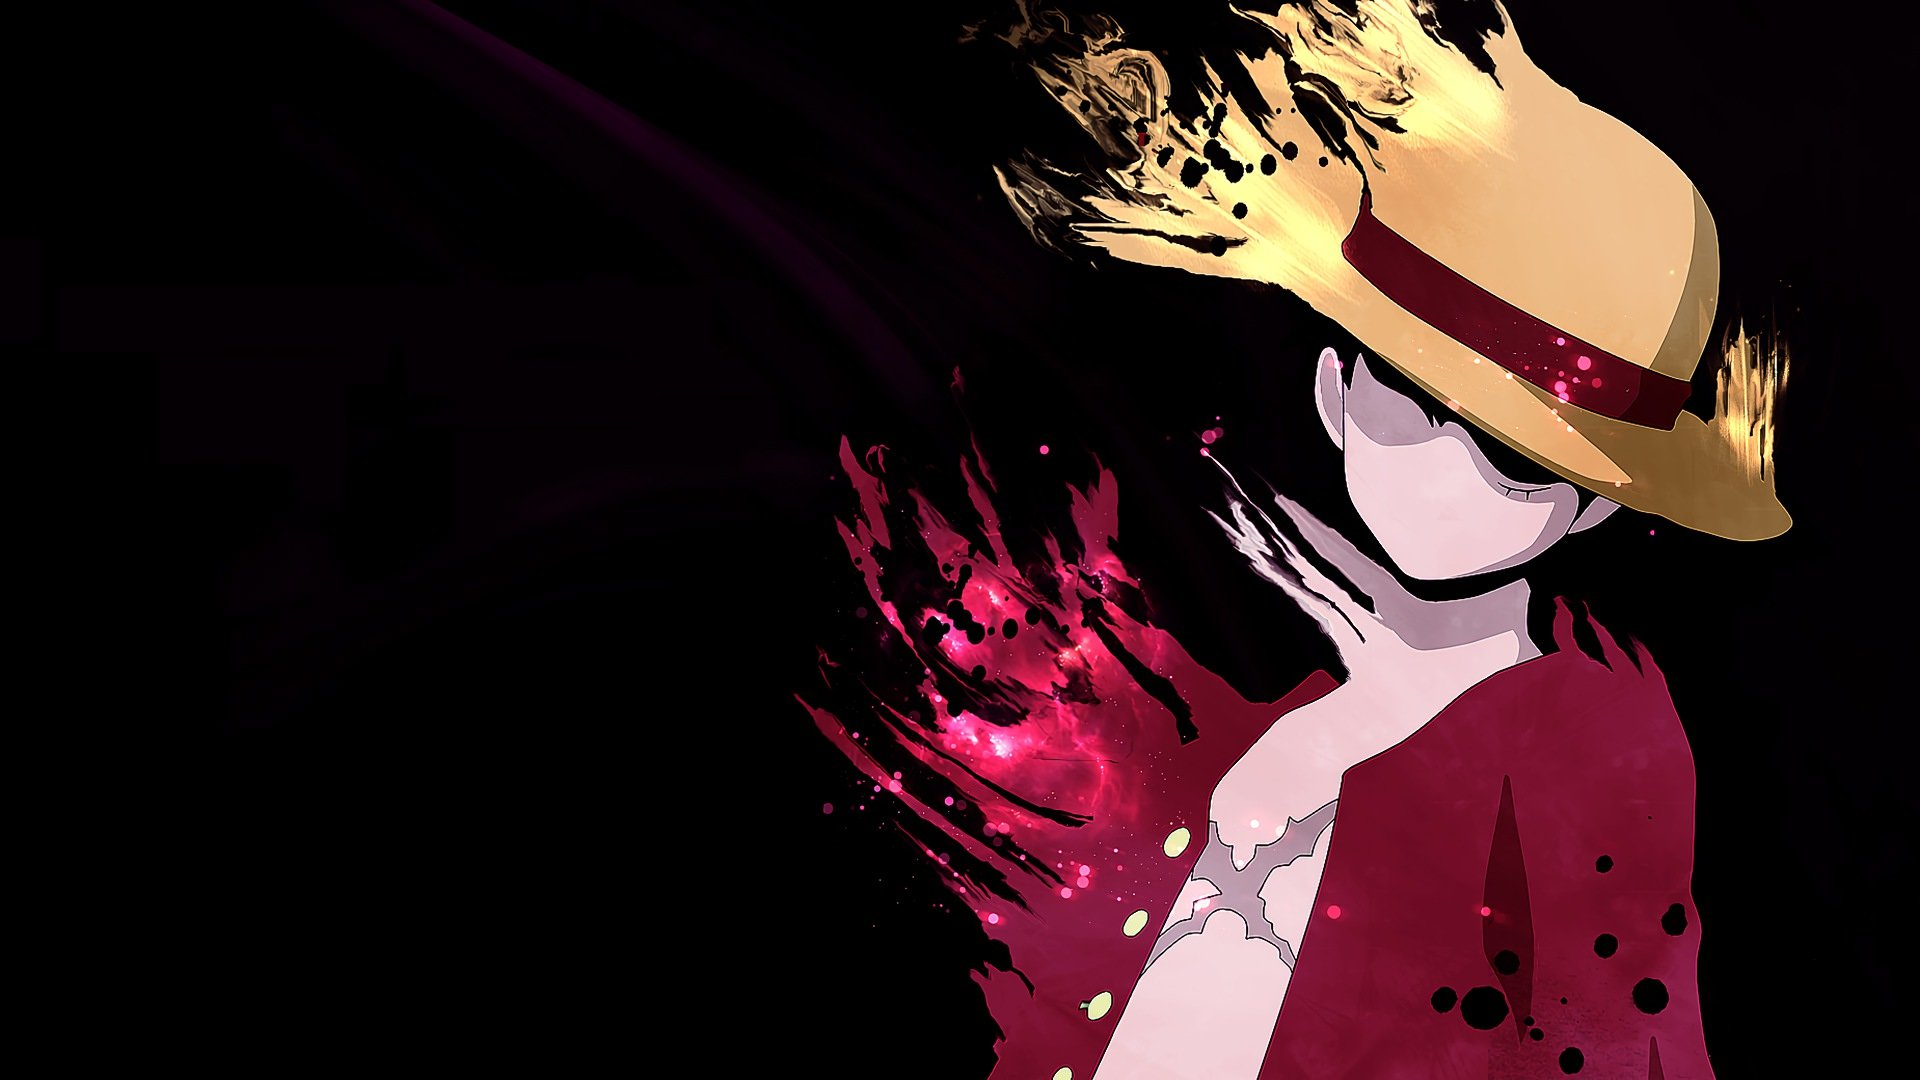 Anime Wallpaper One Piece Hd